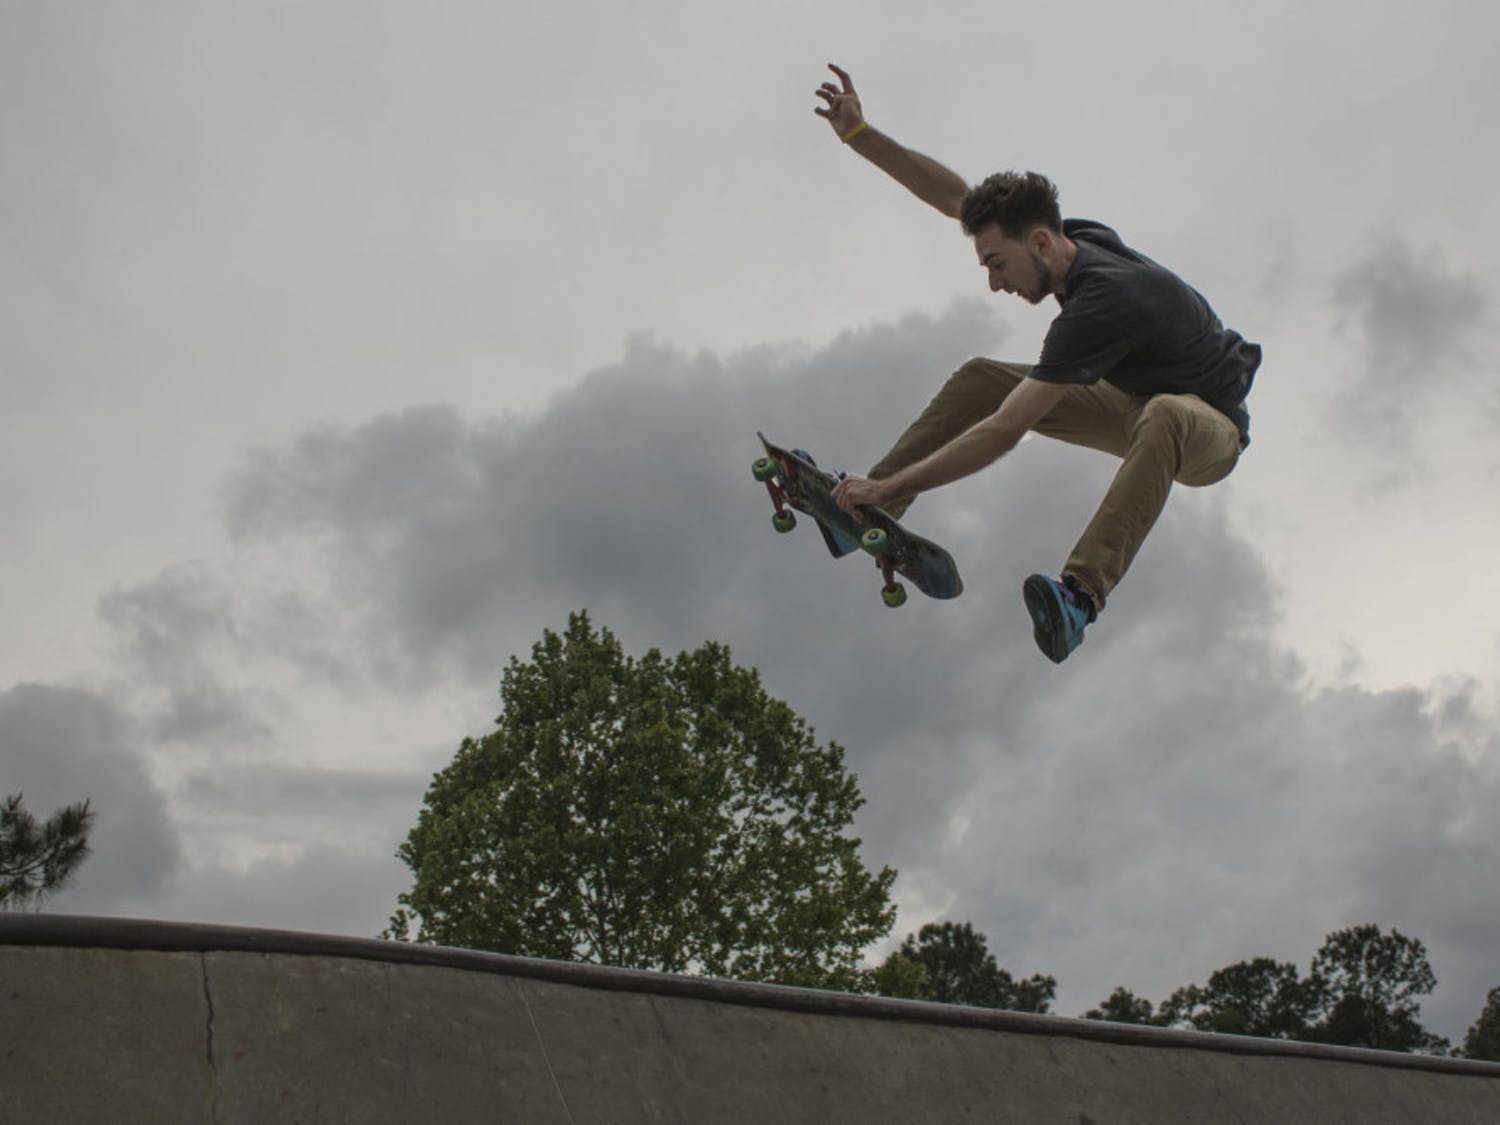 """Paul Austin, a 21-year-old UF veterinary medicine student, performs a trick on his skateboard Tuesday evening at Possum Creek Park, 4009 NW 53rd Ave. Austin works full time as the head assembly technician specialist at Fabco-Air, Inc. and takes all of his classes online, but he said he tries to practice skating at least two or three times per week. """"It's my way to get out and be free,"""" Austin said. """"It's like flying to me."""""""